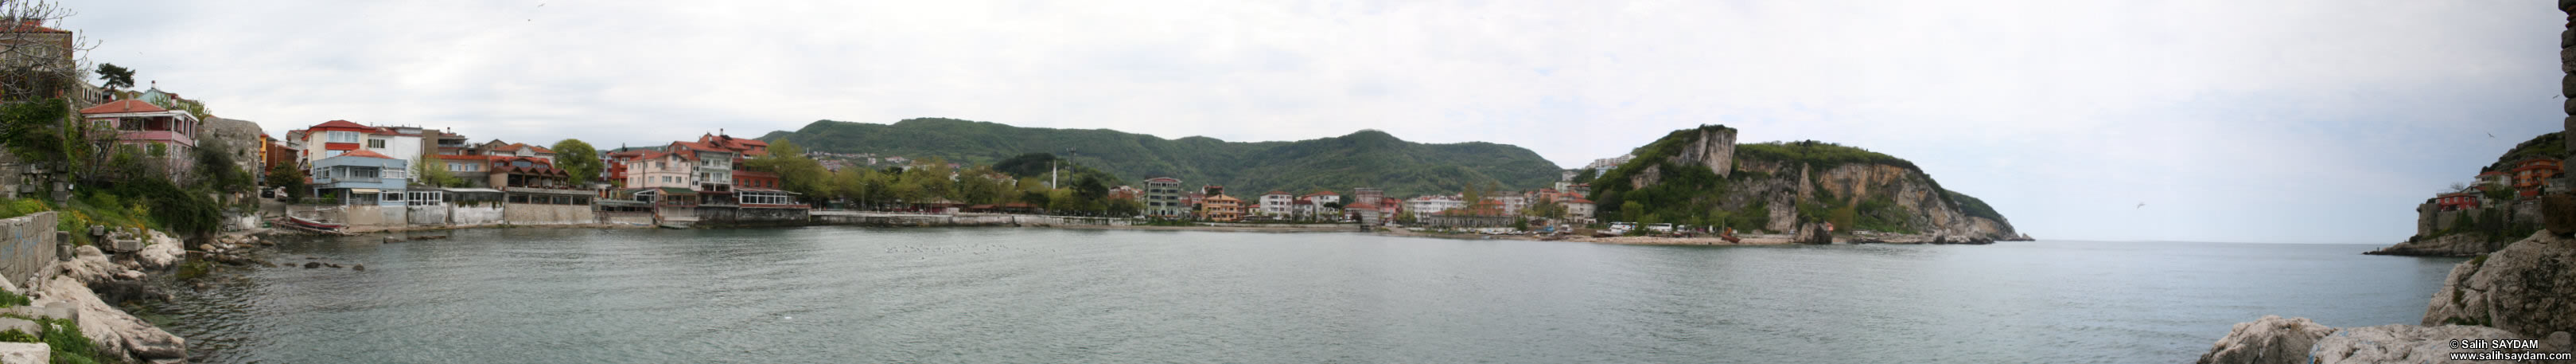 Panorama of Little Harbour 3 (Bartin, Amasra)